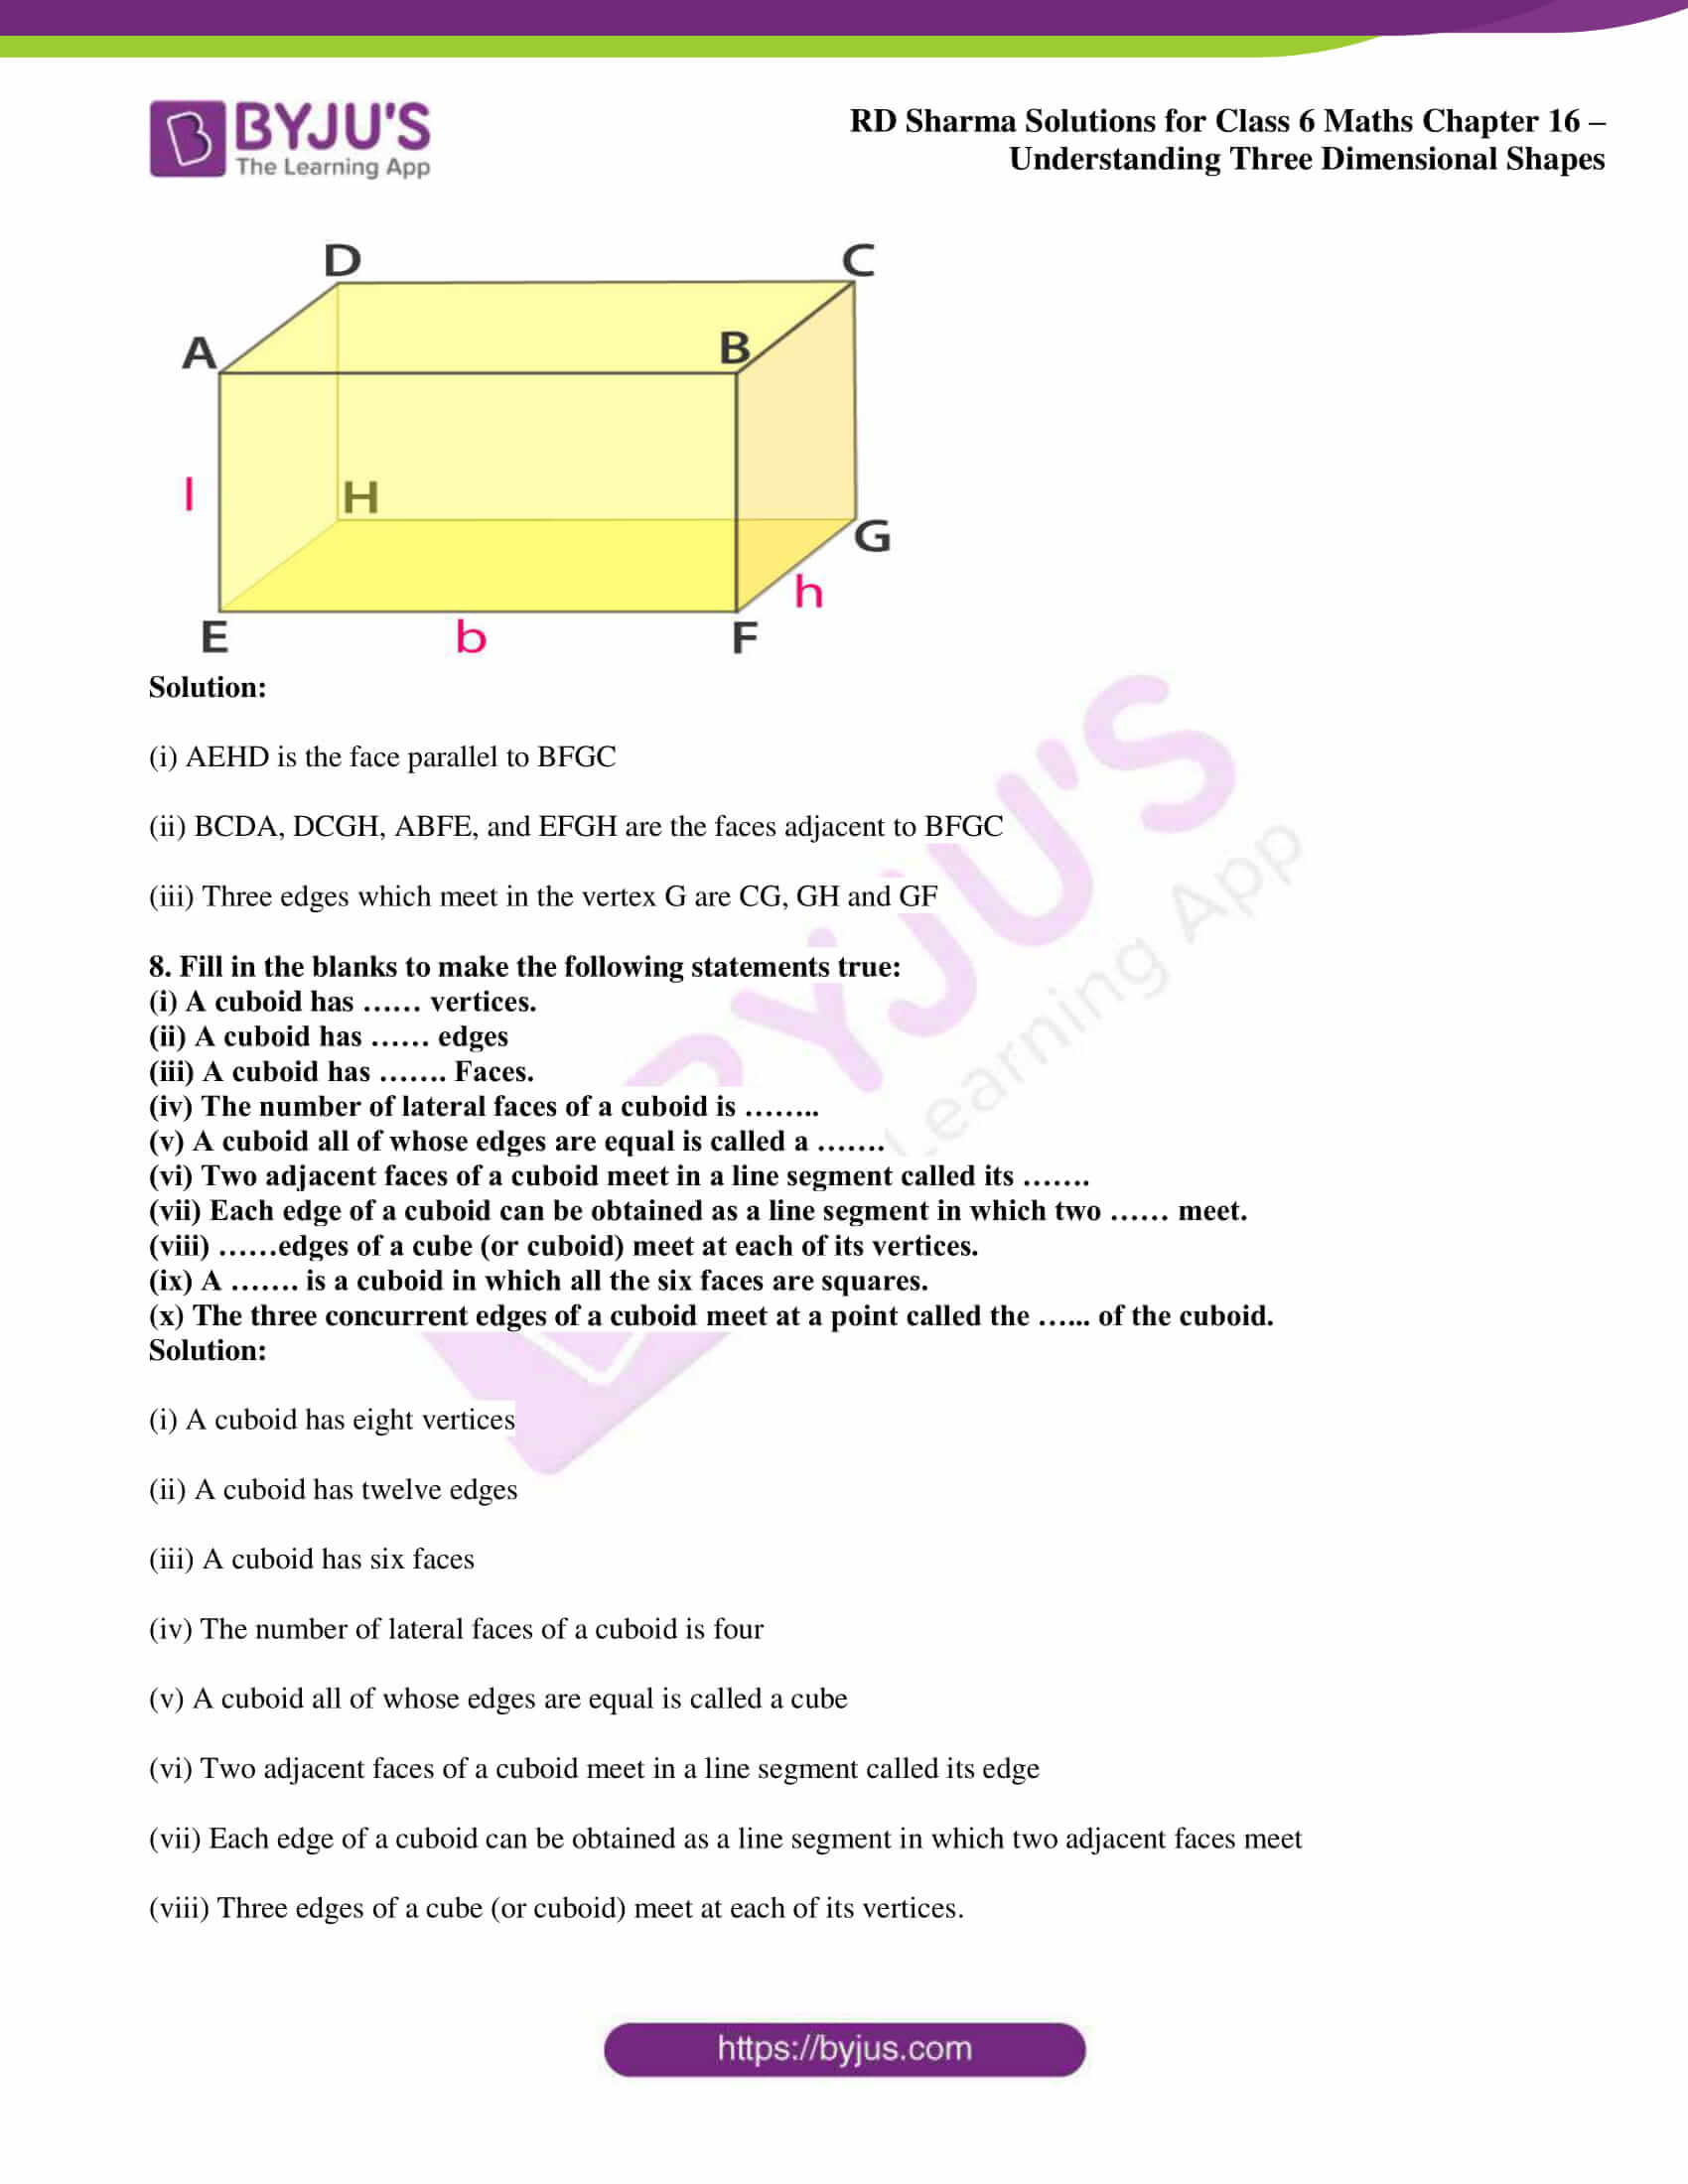 rd sharma solutions nov2020 class 6 maths chapter 16 exercise 1 4